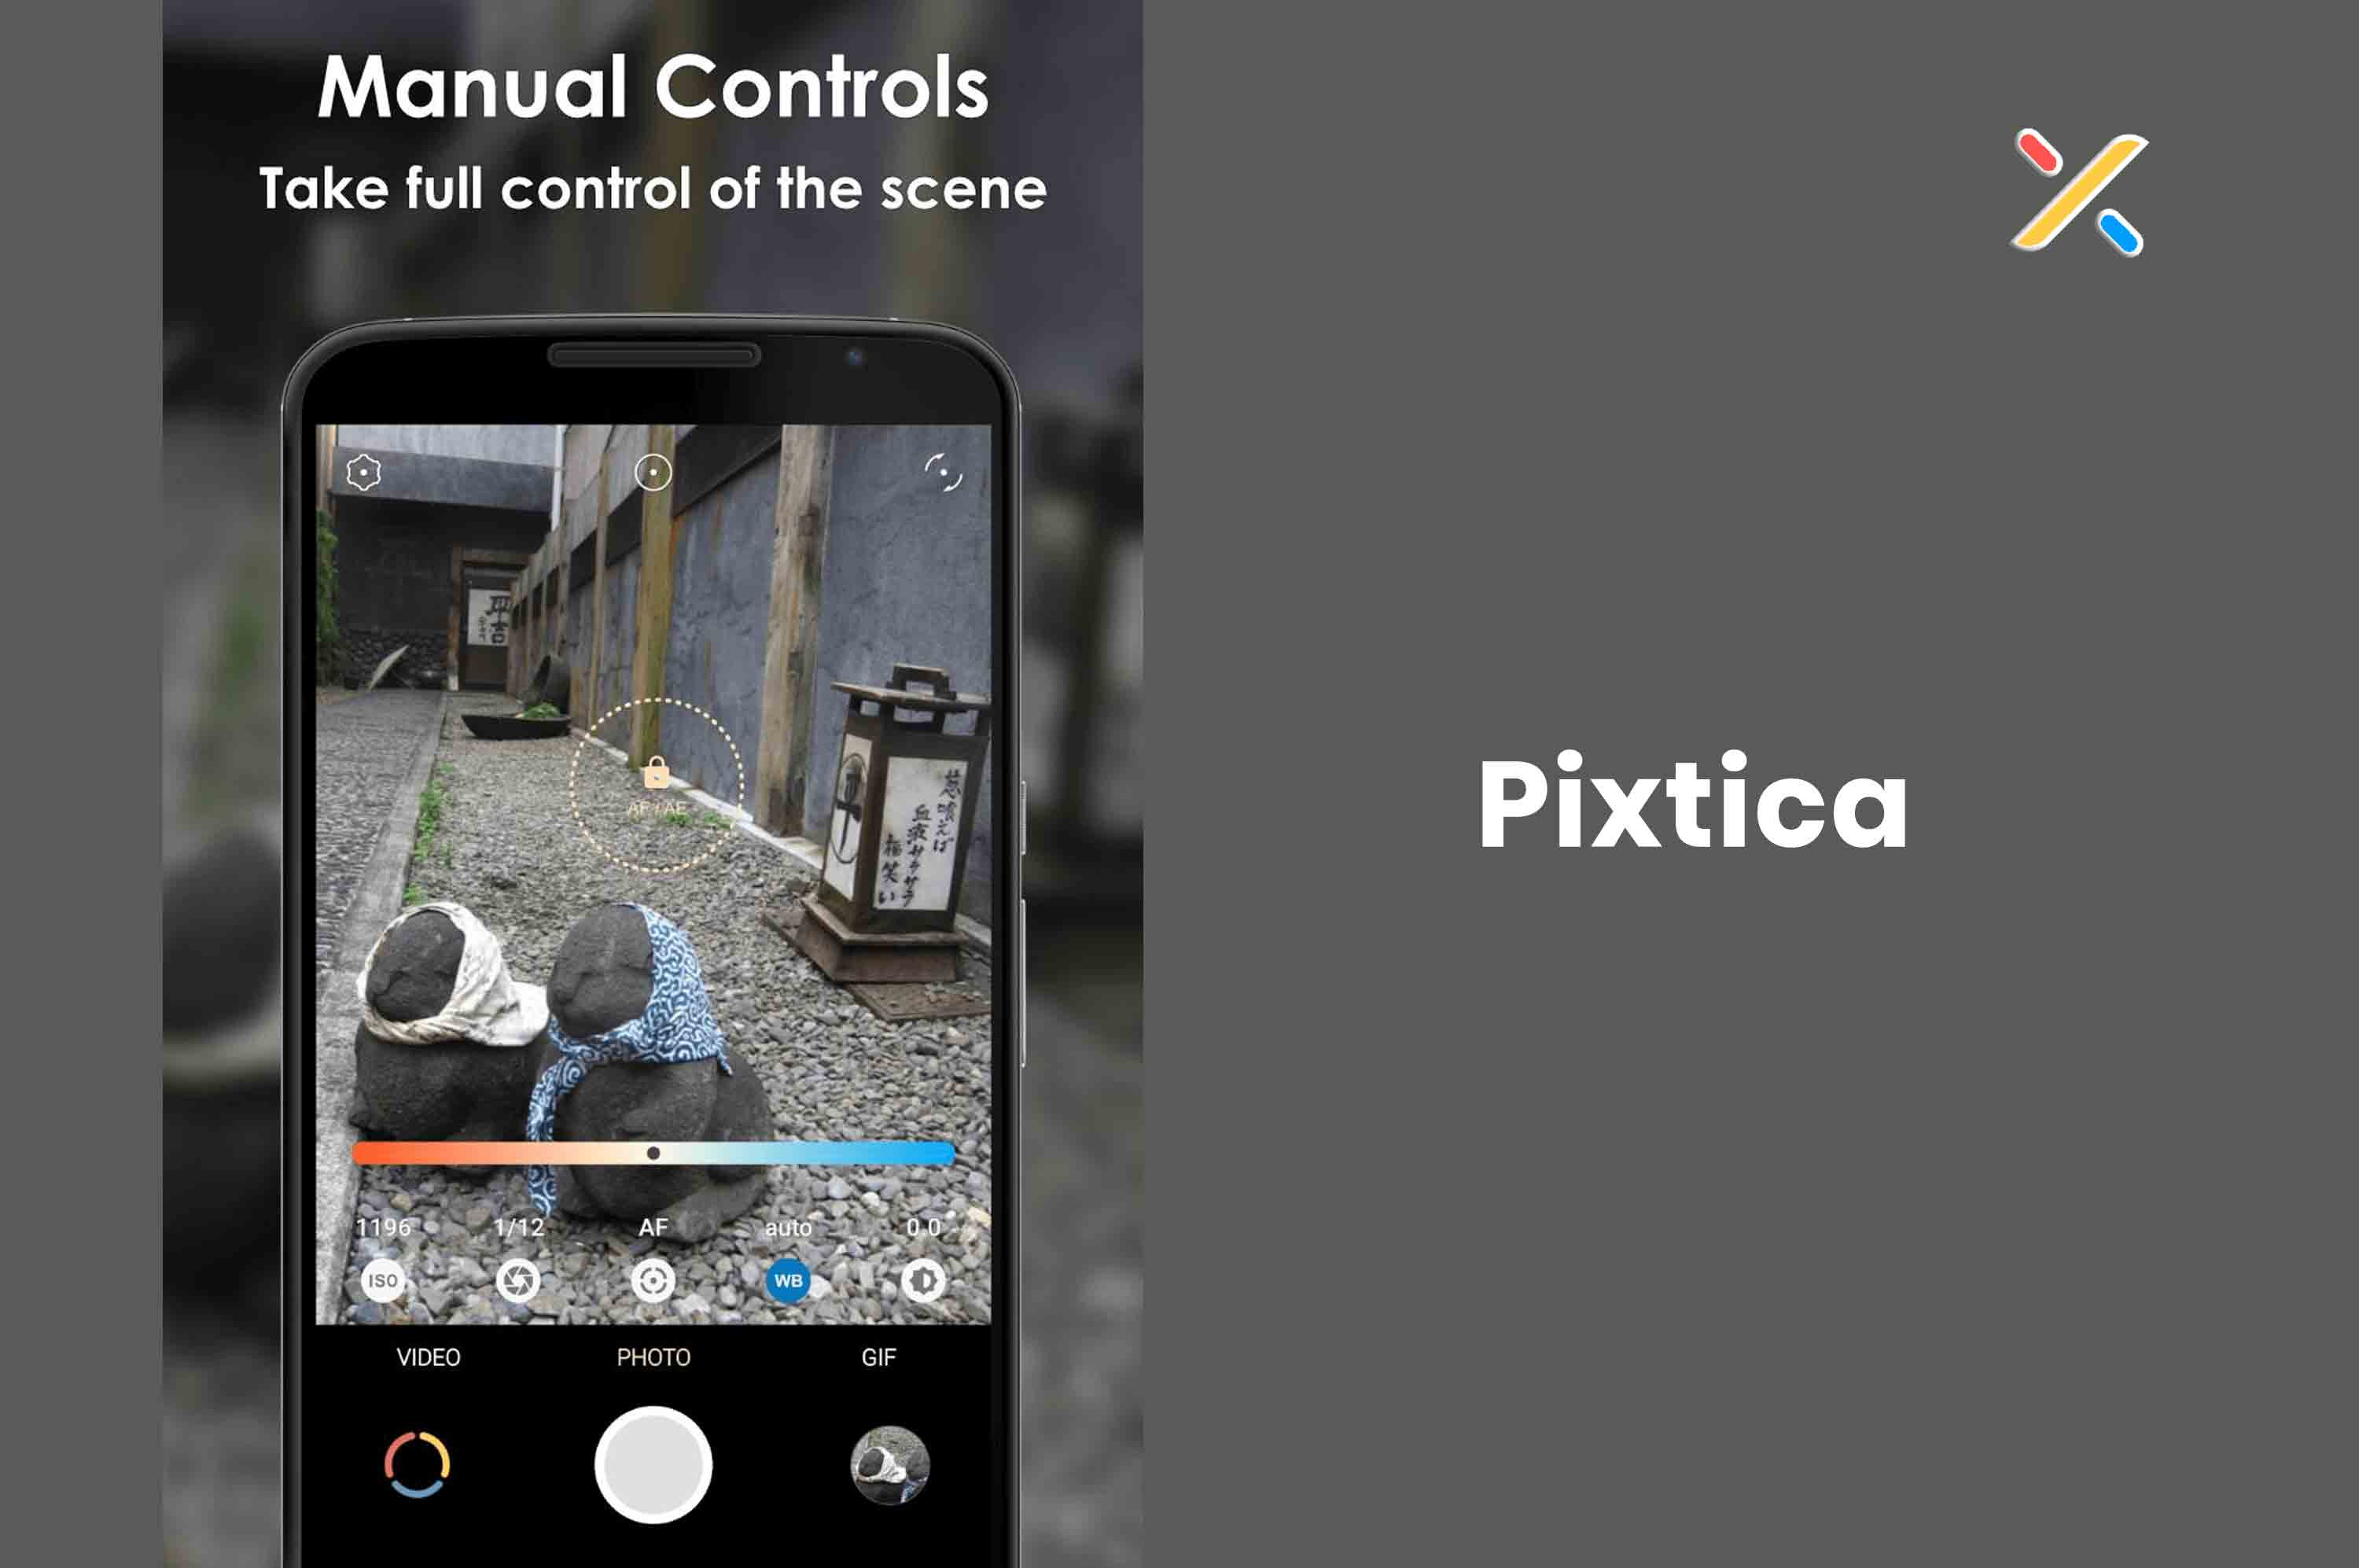 a smartphone with pixtica app and capturing image